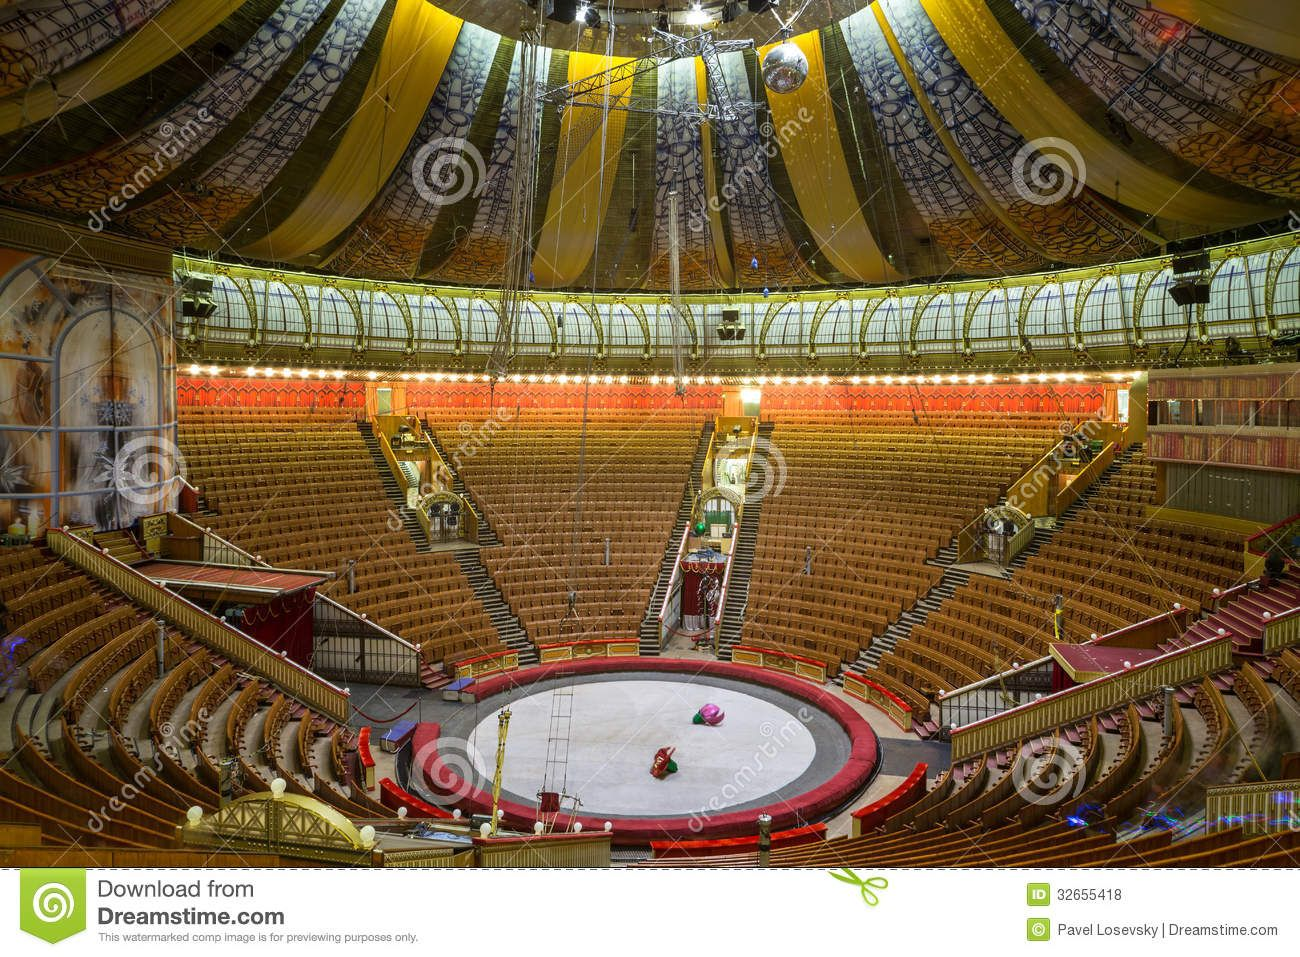 empty-hall-great-moscow-state-circus-dec-vernadsky-prospekt-december-russia-capacity-32655418.jpg (1300×957)